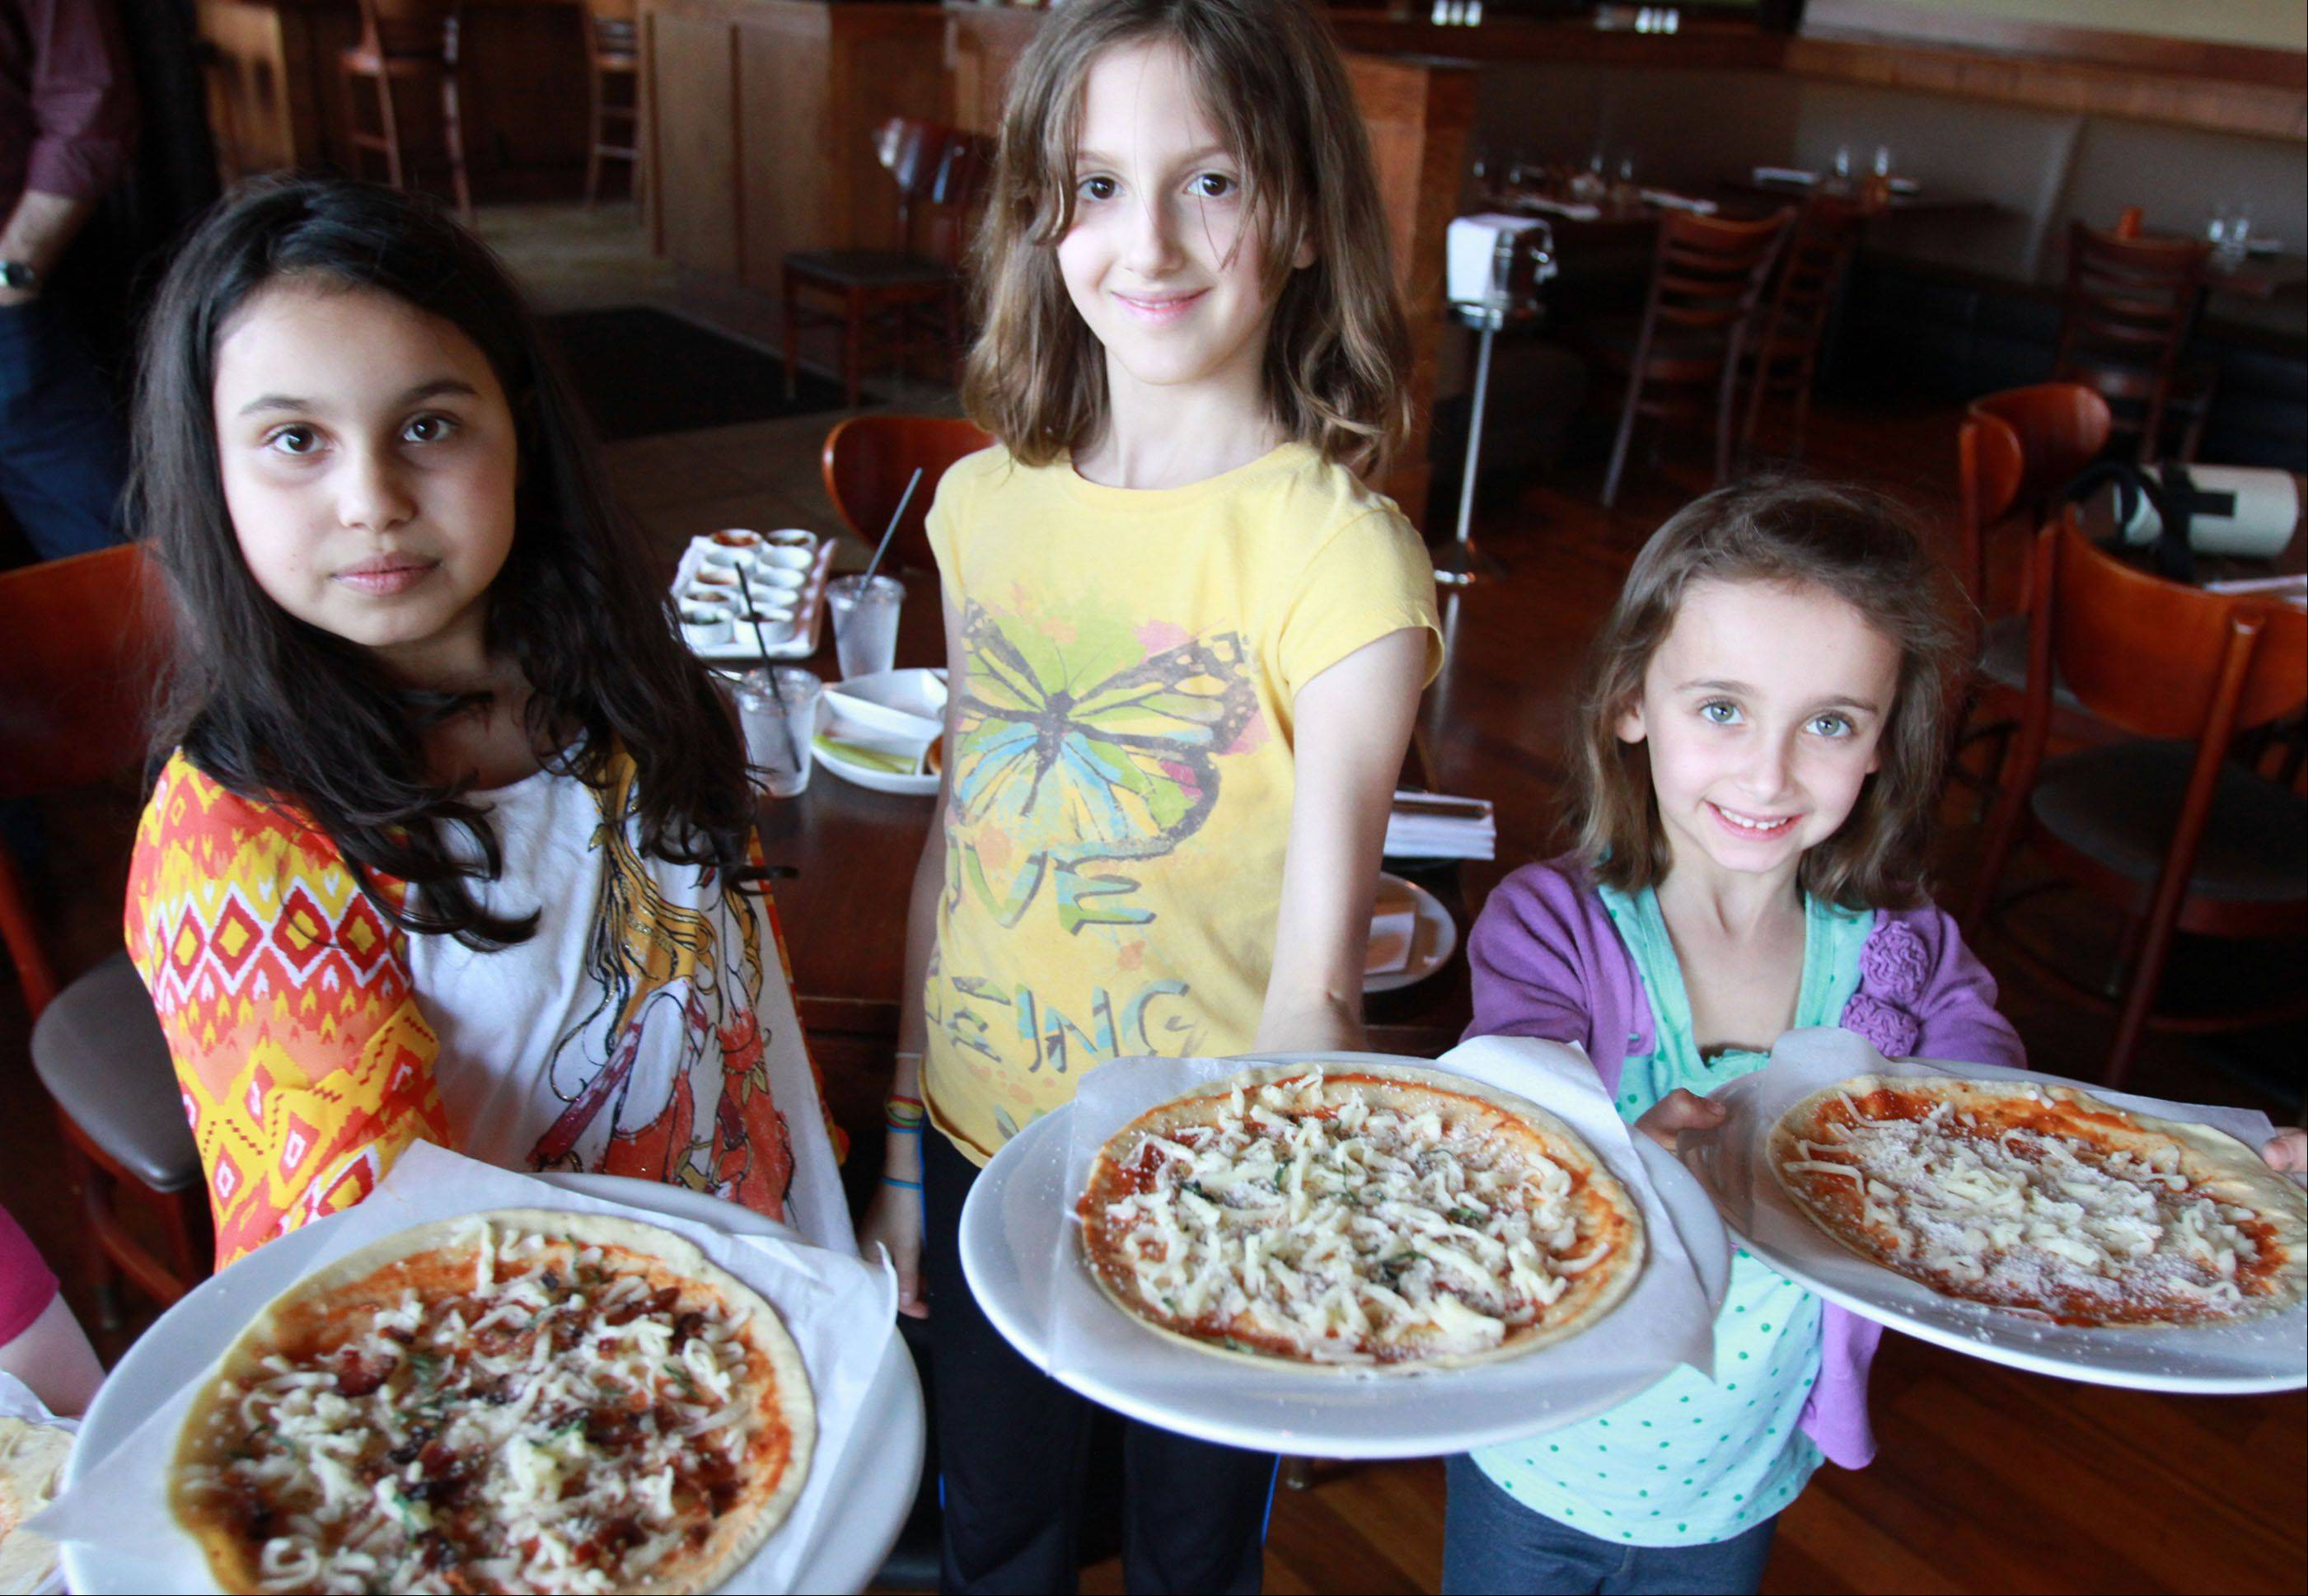 Jaya Nambiar, 9, from left, Kaya Booth, 9, both of Wilmette, and Helena Samson, 6, of Northbrook show healthy pizzas they made for themselves at Prairie Grass Cafe in Northbrook on Friday, April 26. The pizza making was hosted by Sarah Stegner, co-chef and co-owner, w